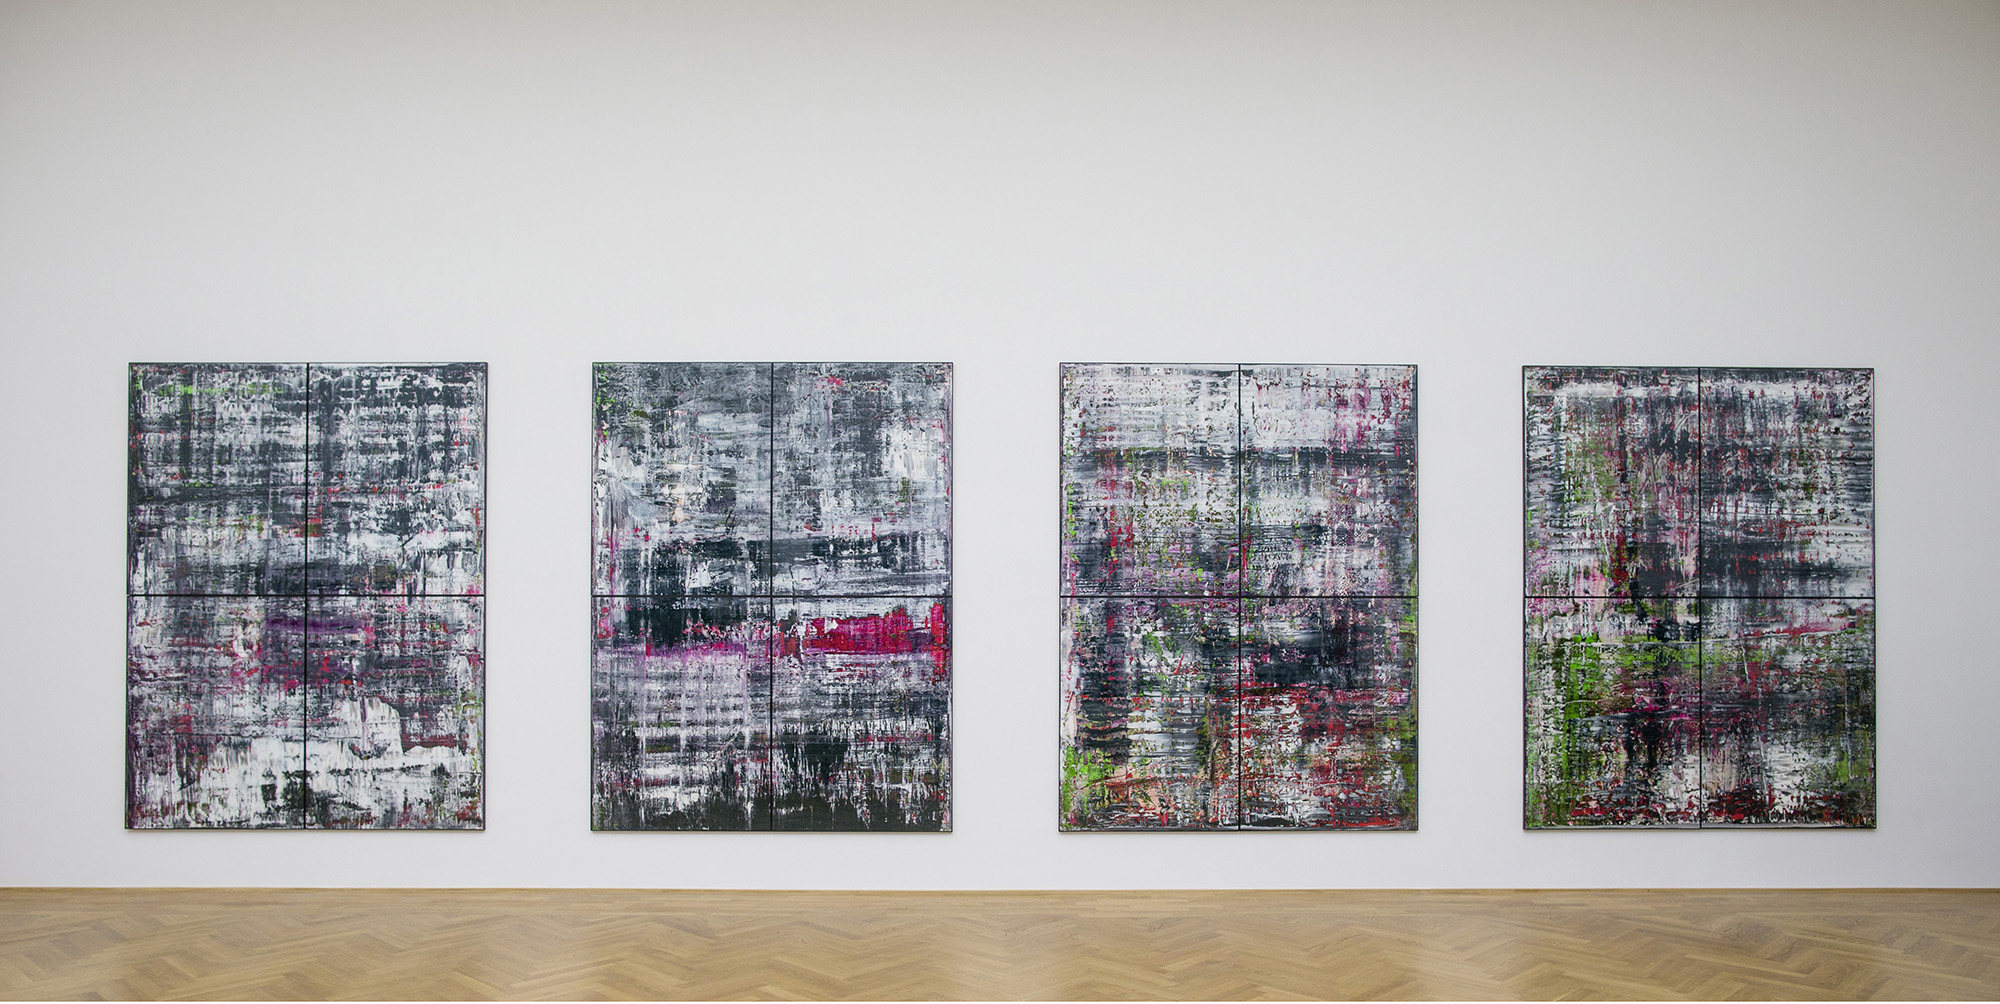 Abstrakte Bilder Gerhard Richter Auction Talk Germany With Changing Vision